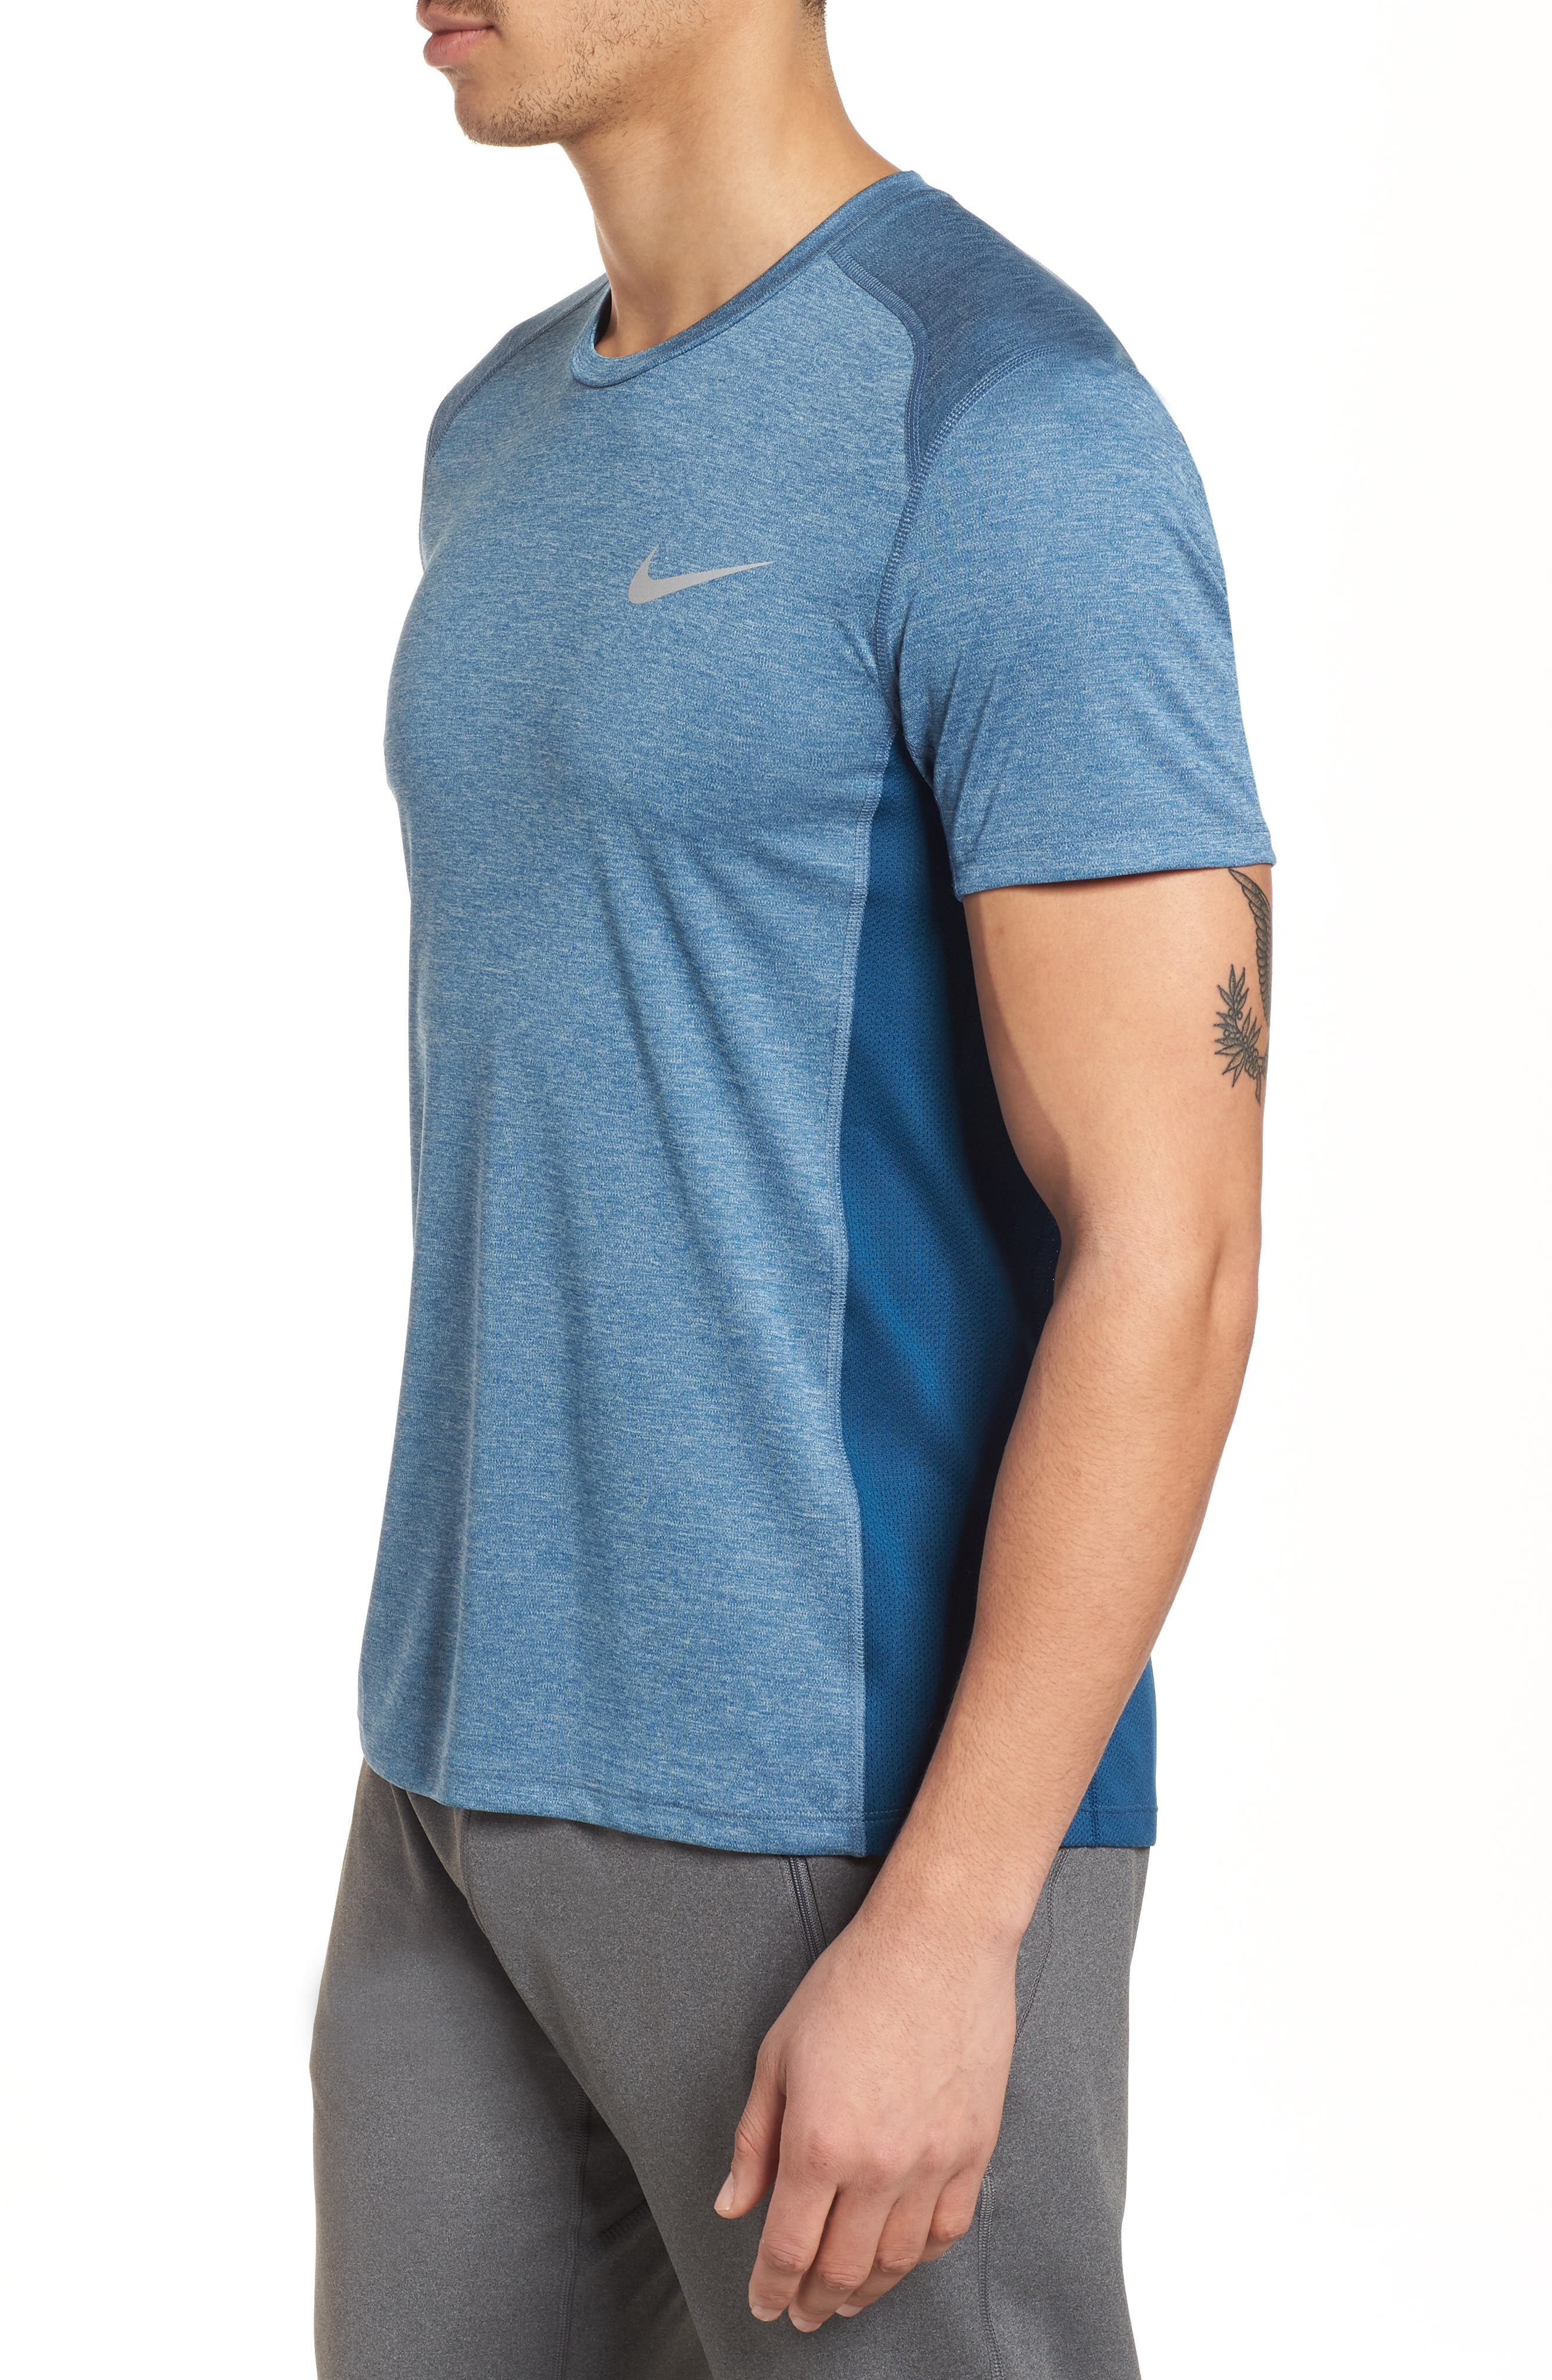 Dry Miler Running Top,                             Alternate thumbnail 3, color,                             Blue Force/ Heather